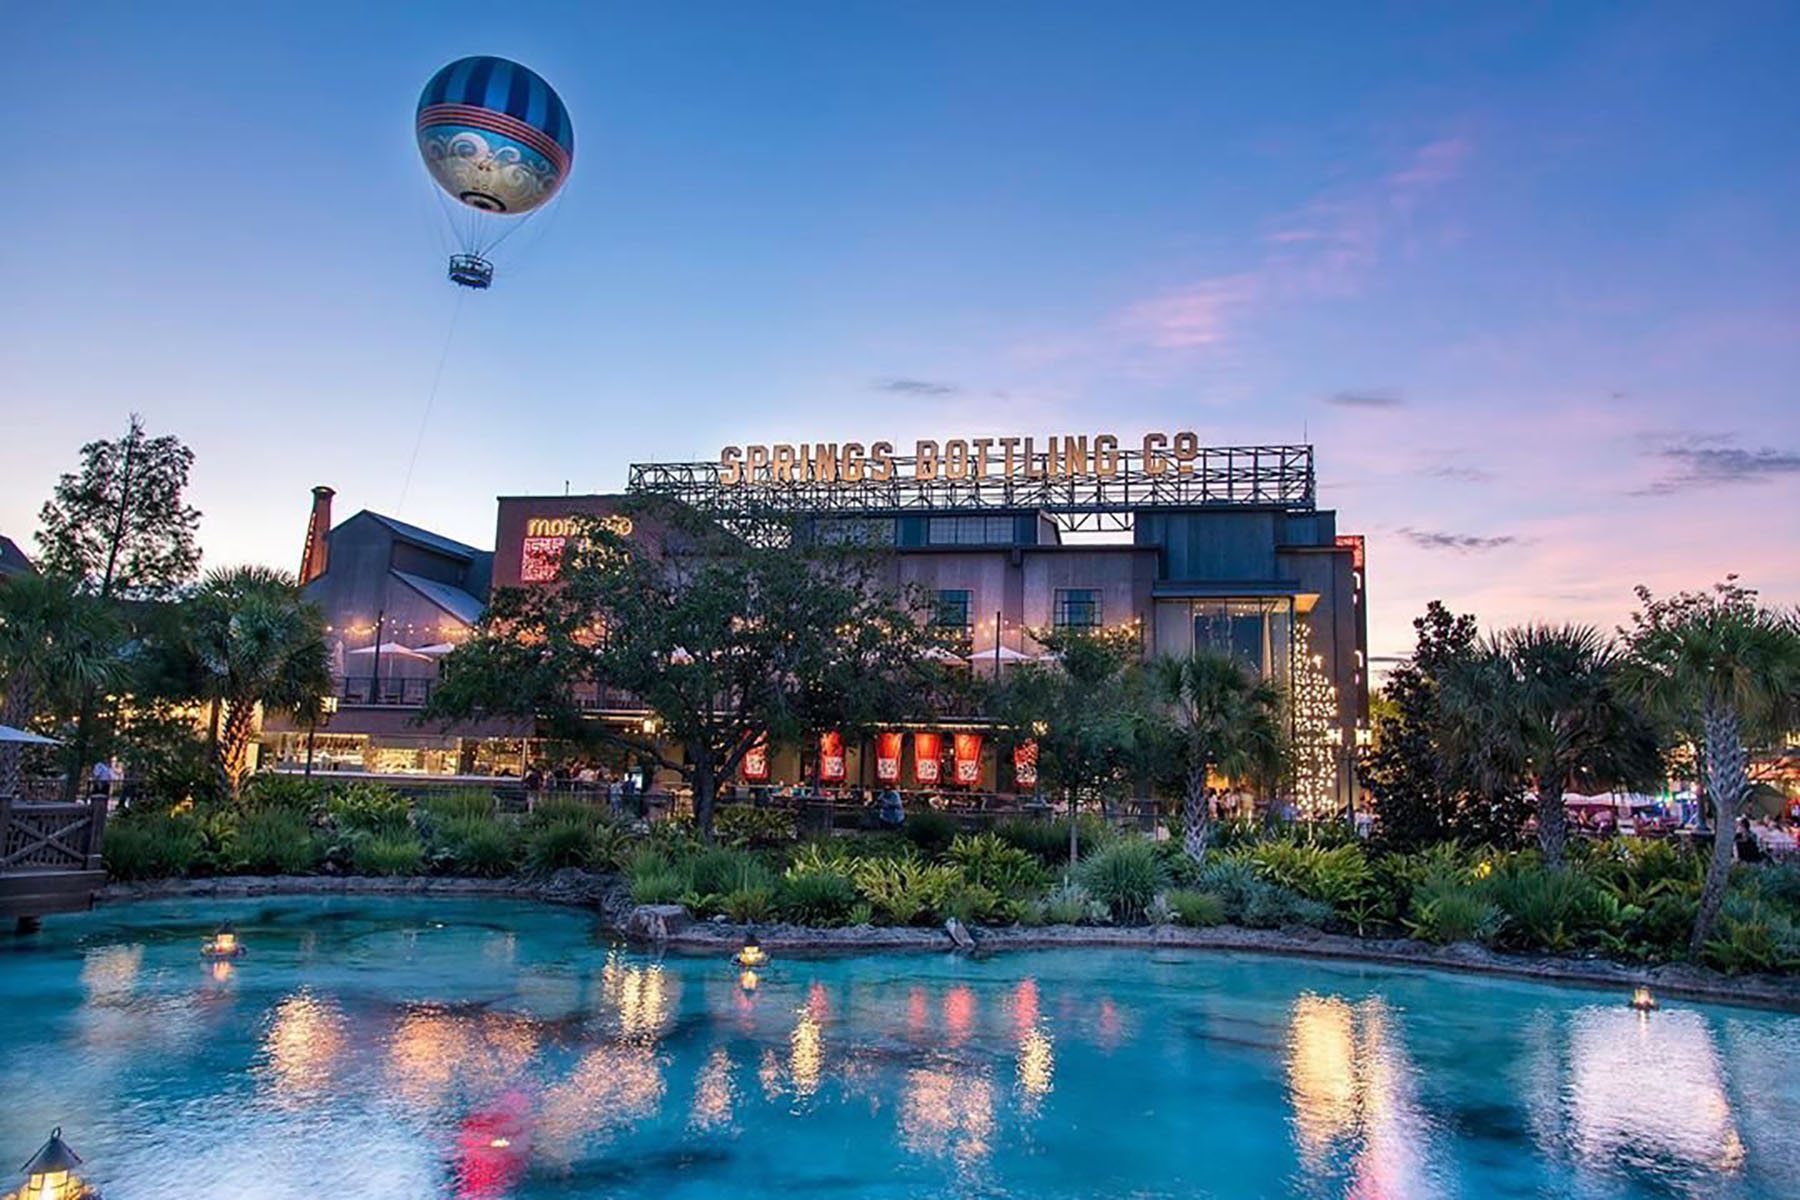 The Springs Bottling Company at Disney Springs